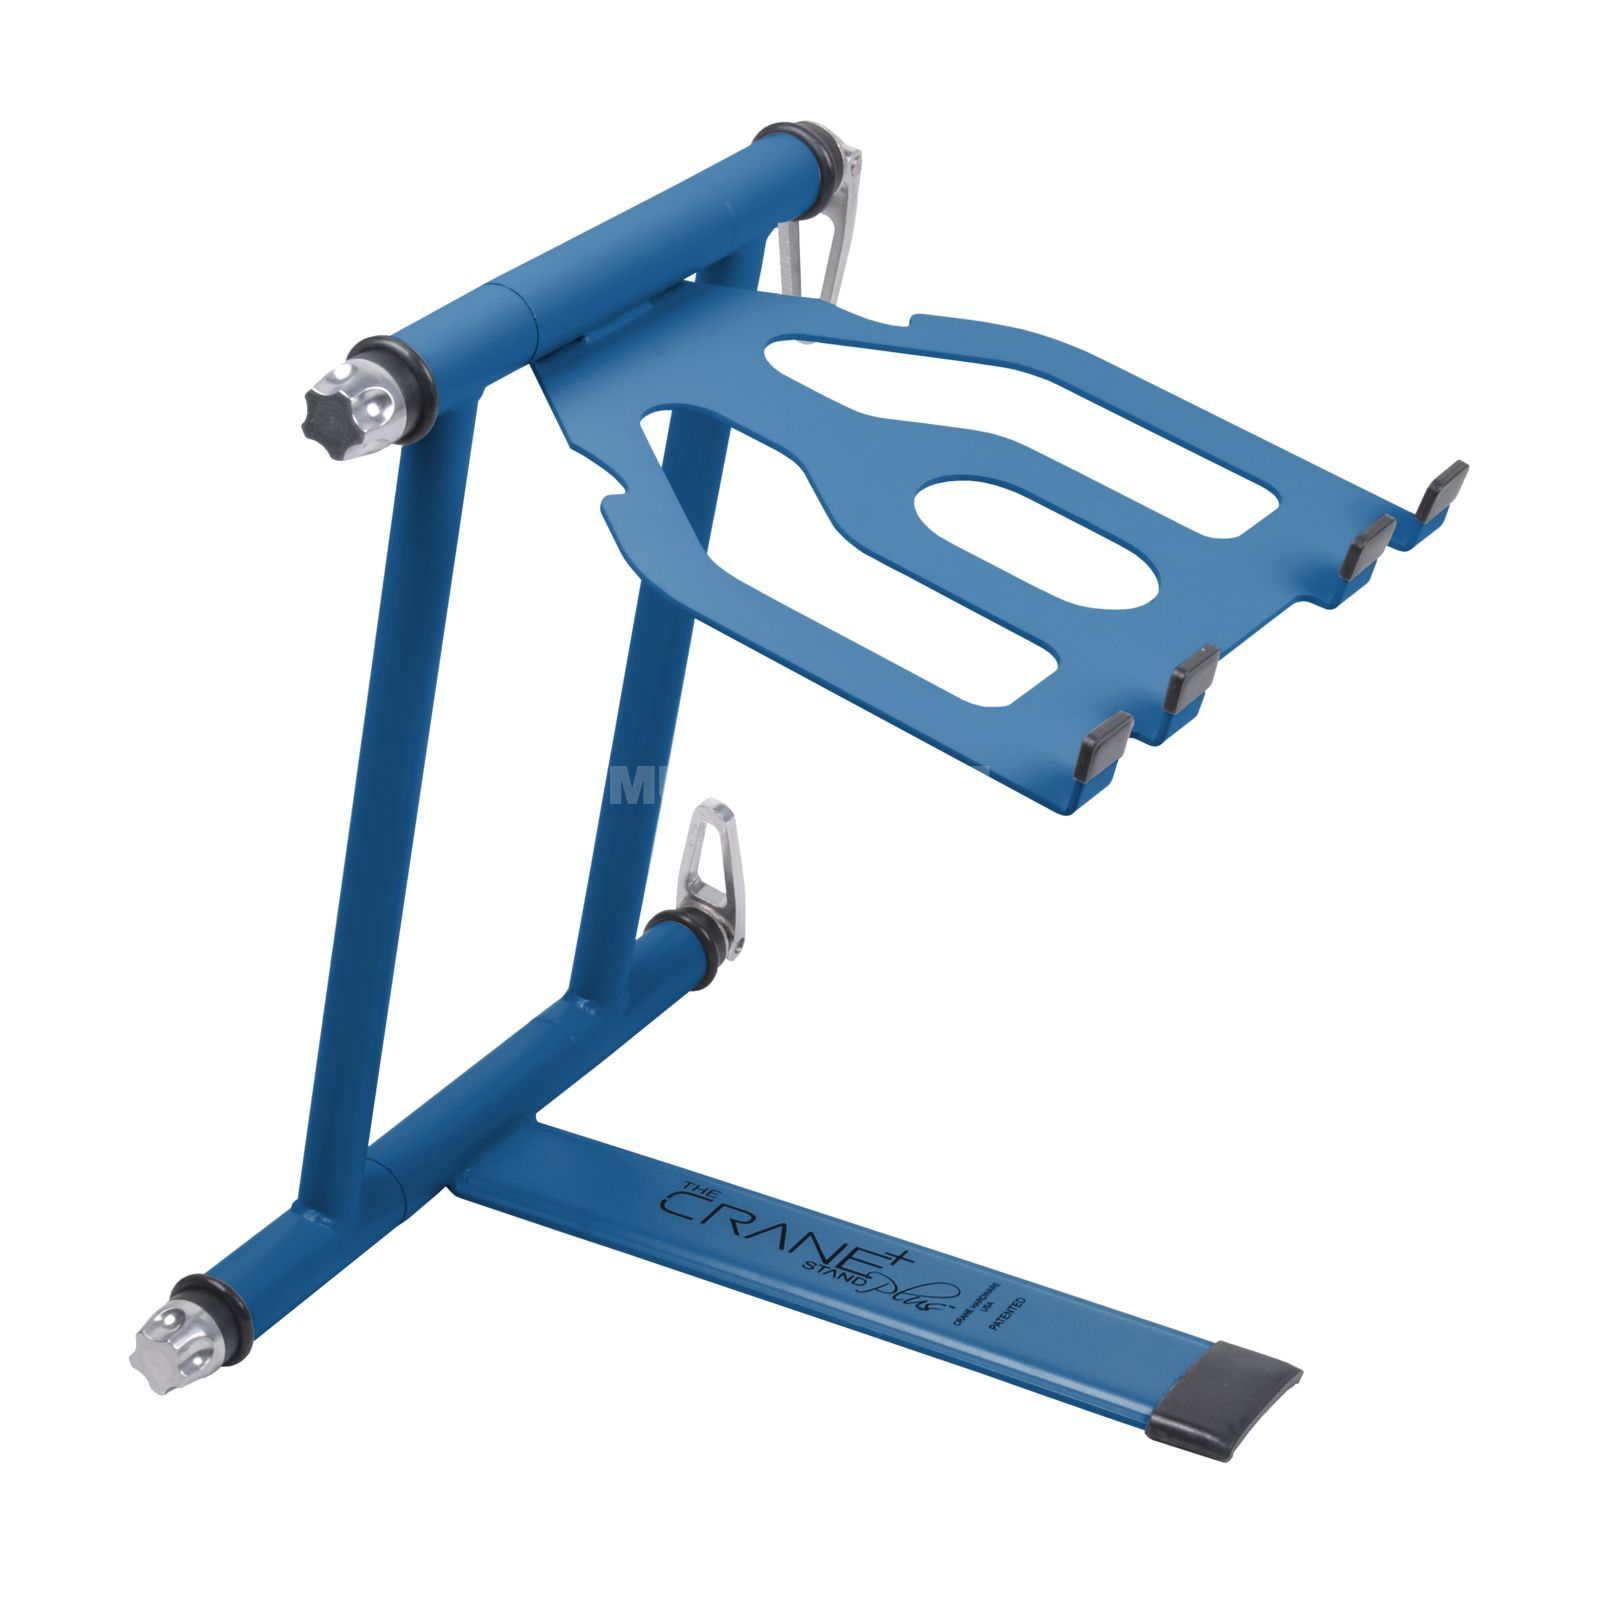 Crane Stand Plus CV3 BL Product Image